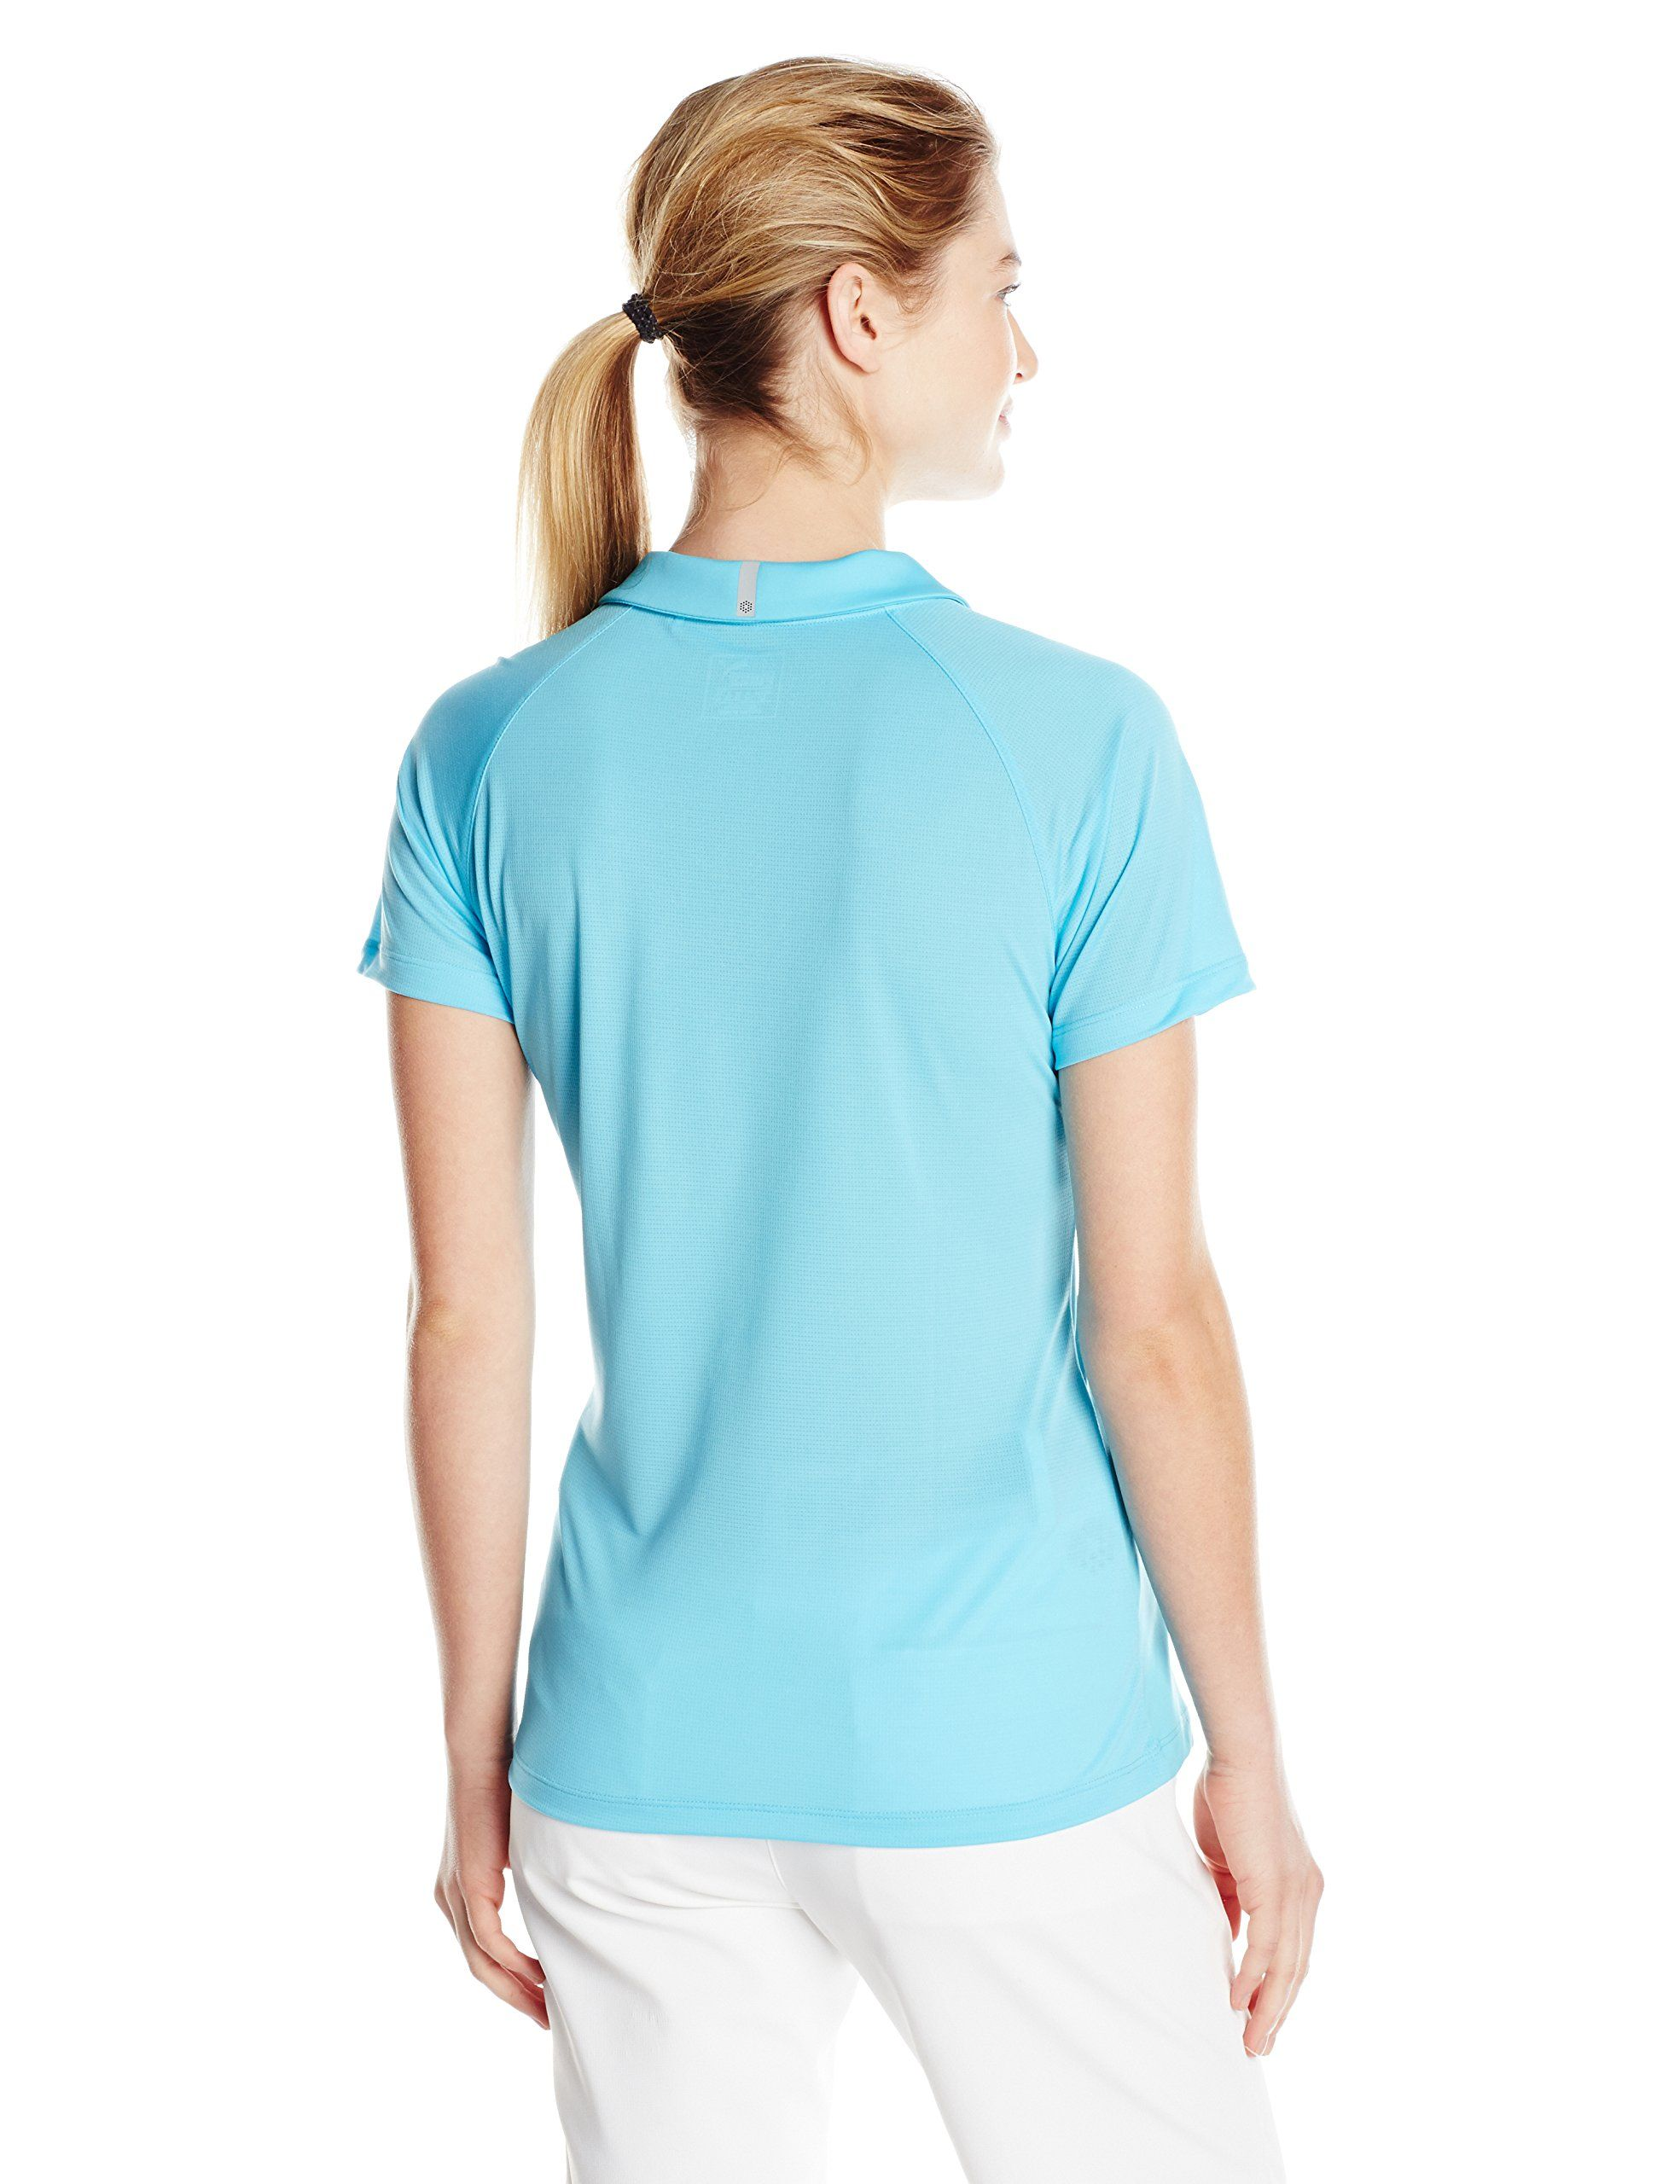 Golf Clothing     Puma Golf Womens W Mesh Polo Blast XSmall   Click picture  for more information. (This is an affiliate link).  ladiesgolf 77a9199106